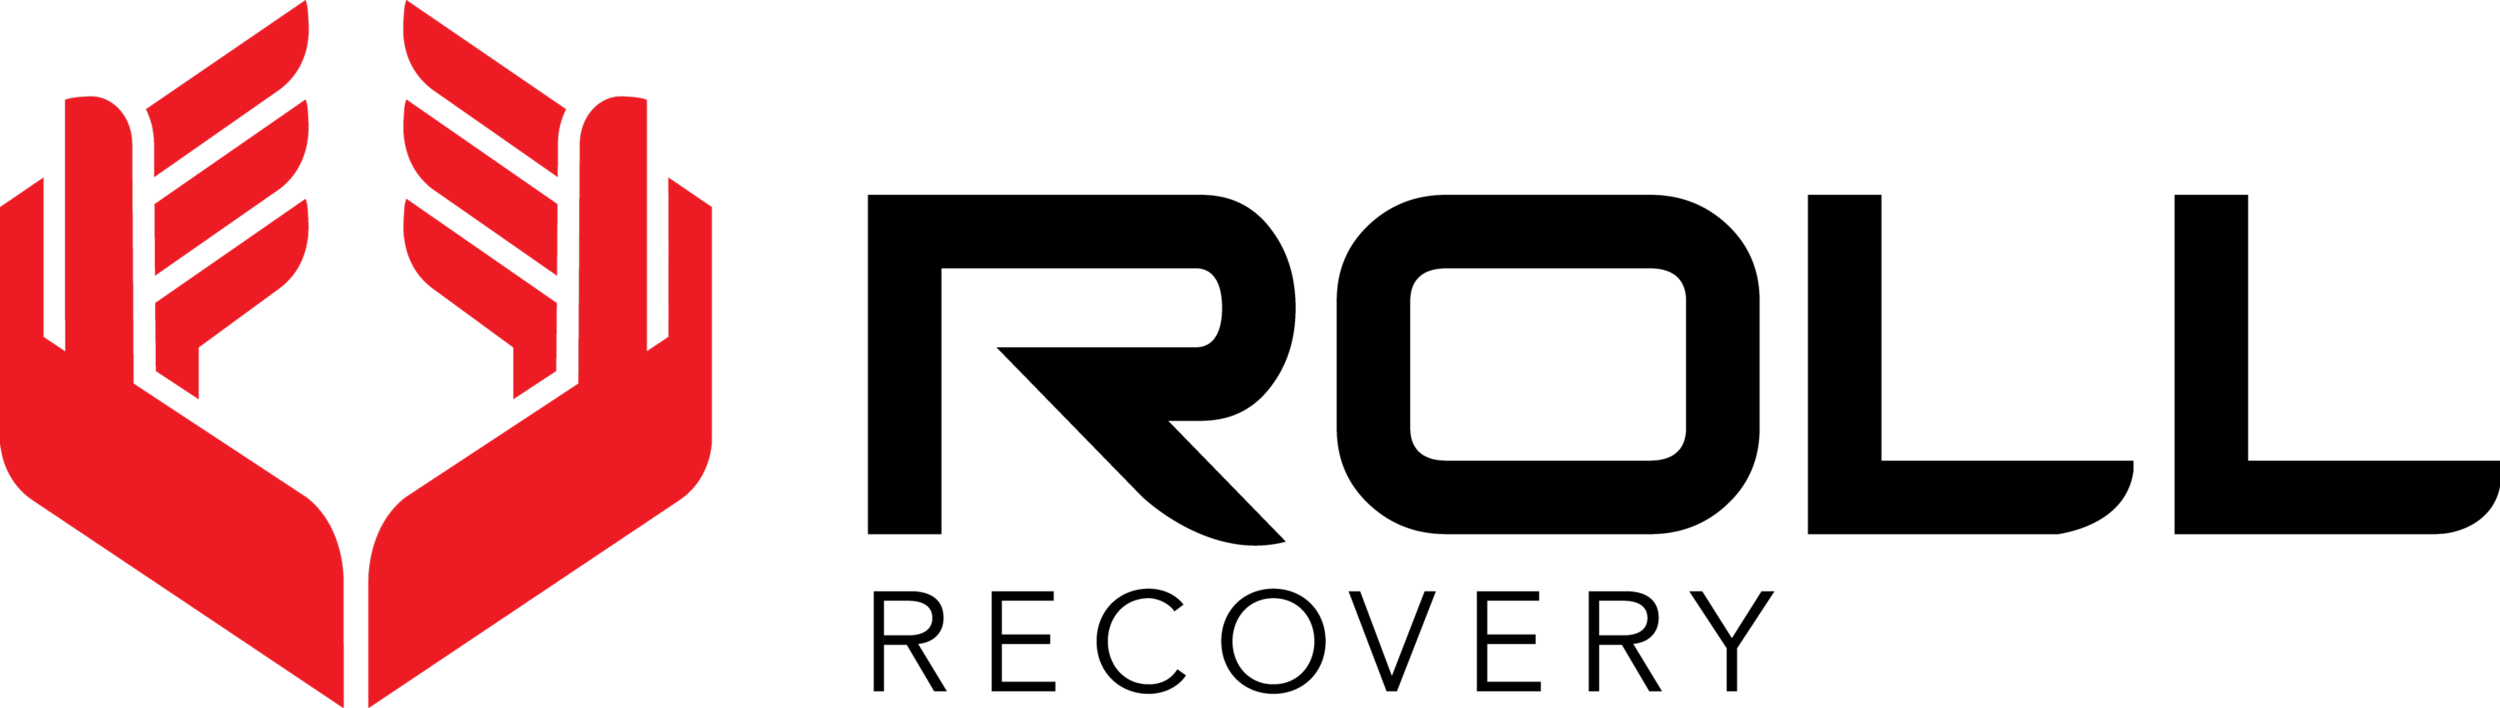 ROLL-Recovery-LOGO_Black.png